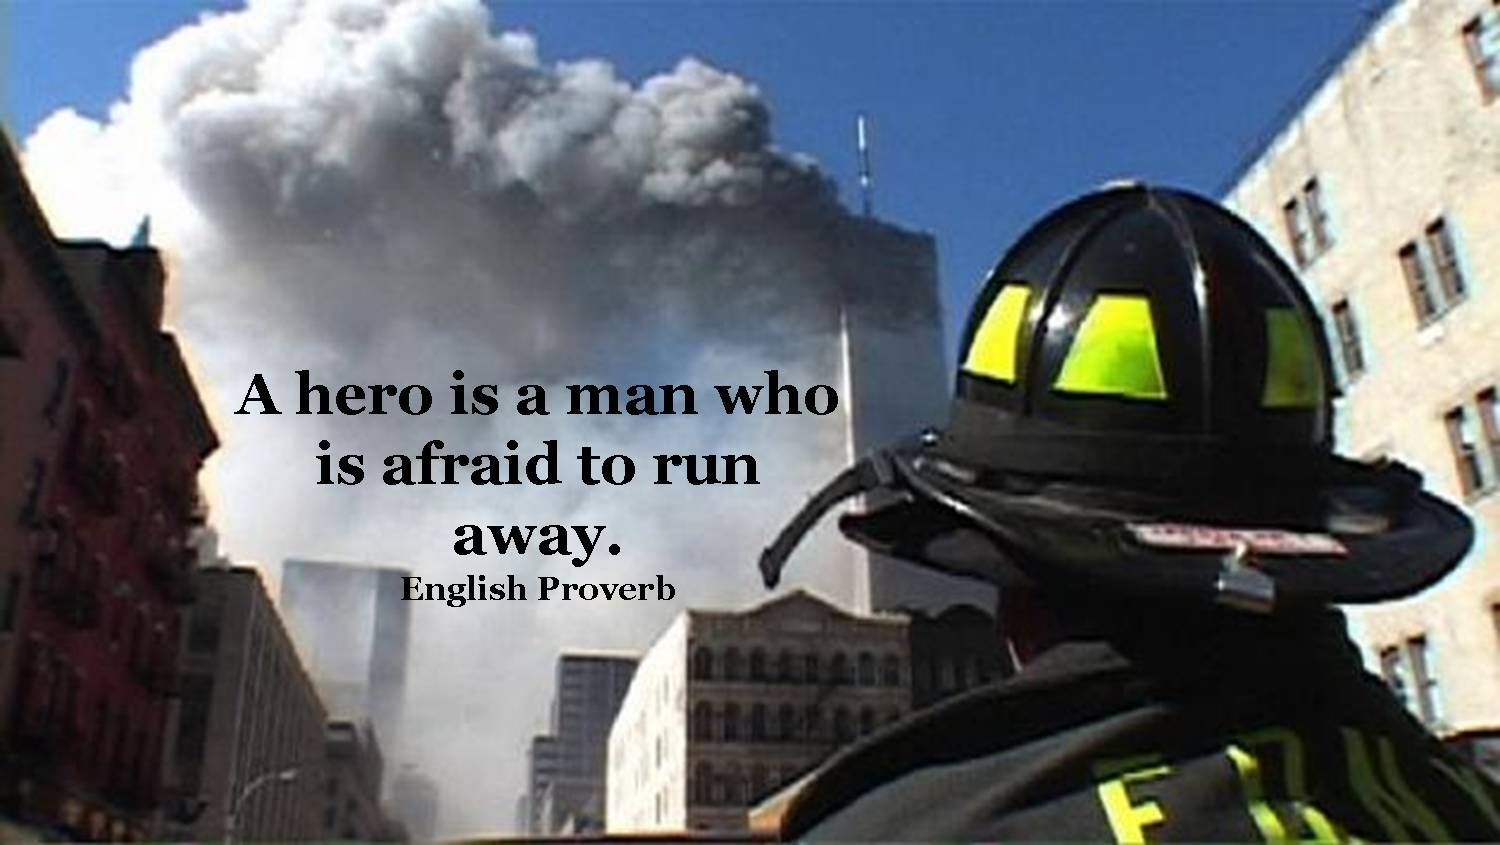 September 11th quotes quotes about september 11th sayings about - 9 11 With Sayings Inspirational Lucky Pennies Hero Quotesa